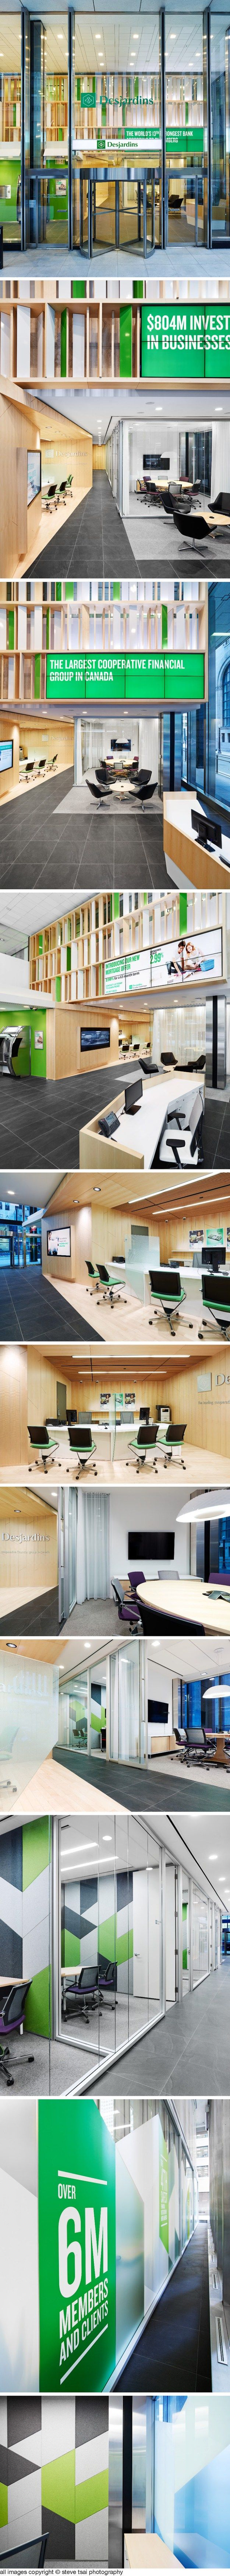 10 Best Corporate Interiors Images On Pinterest